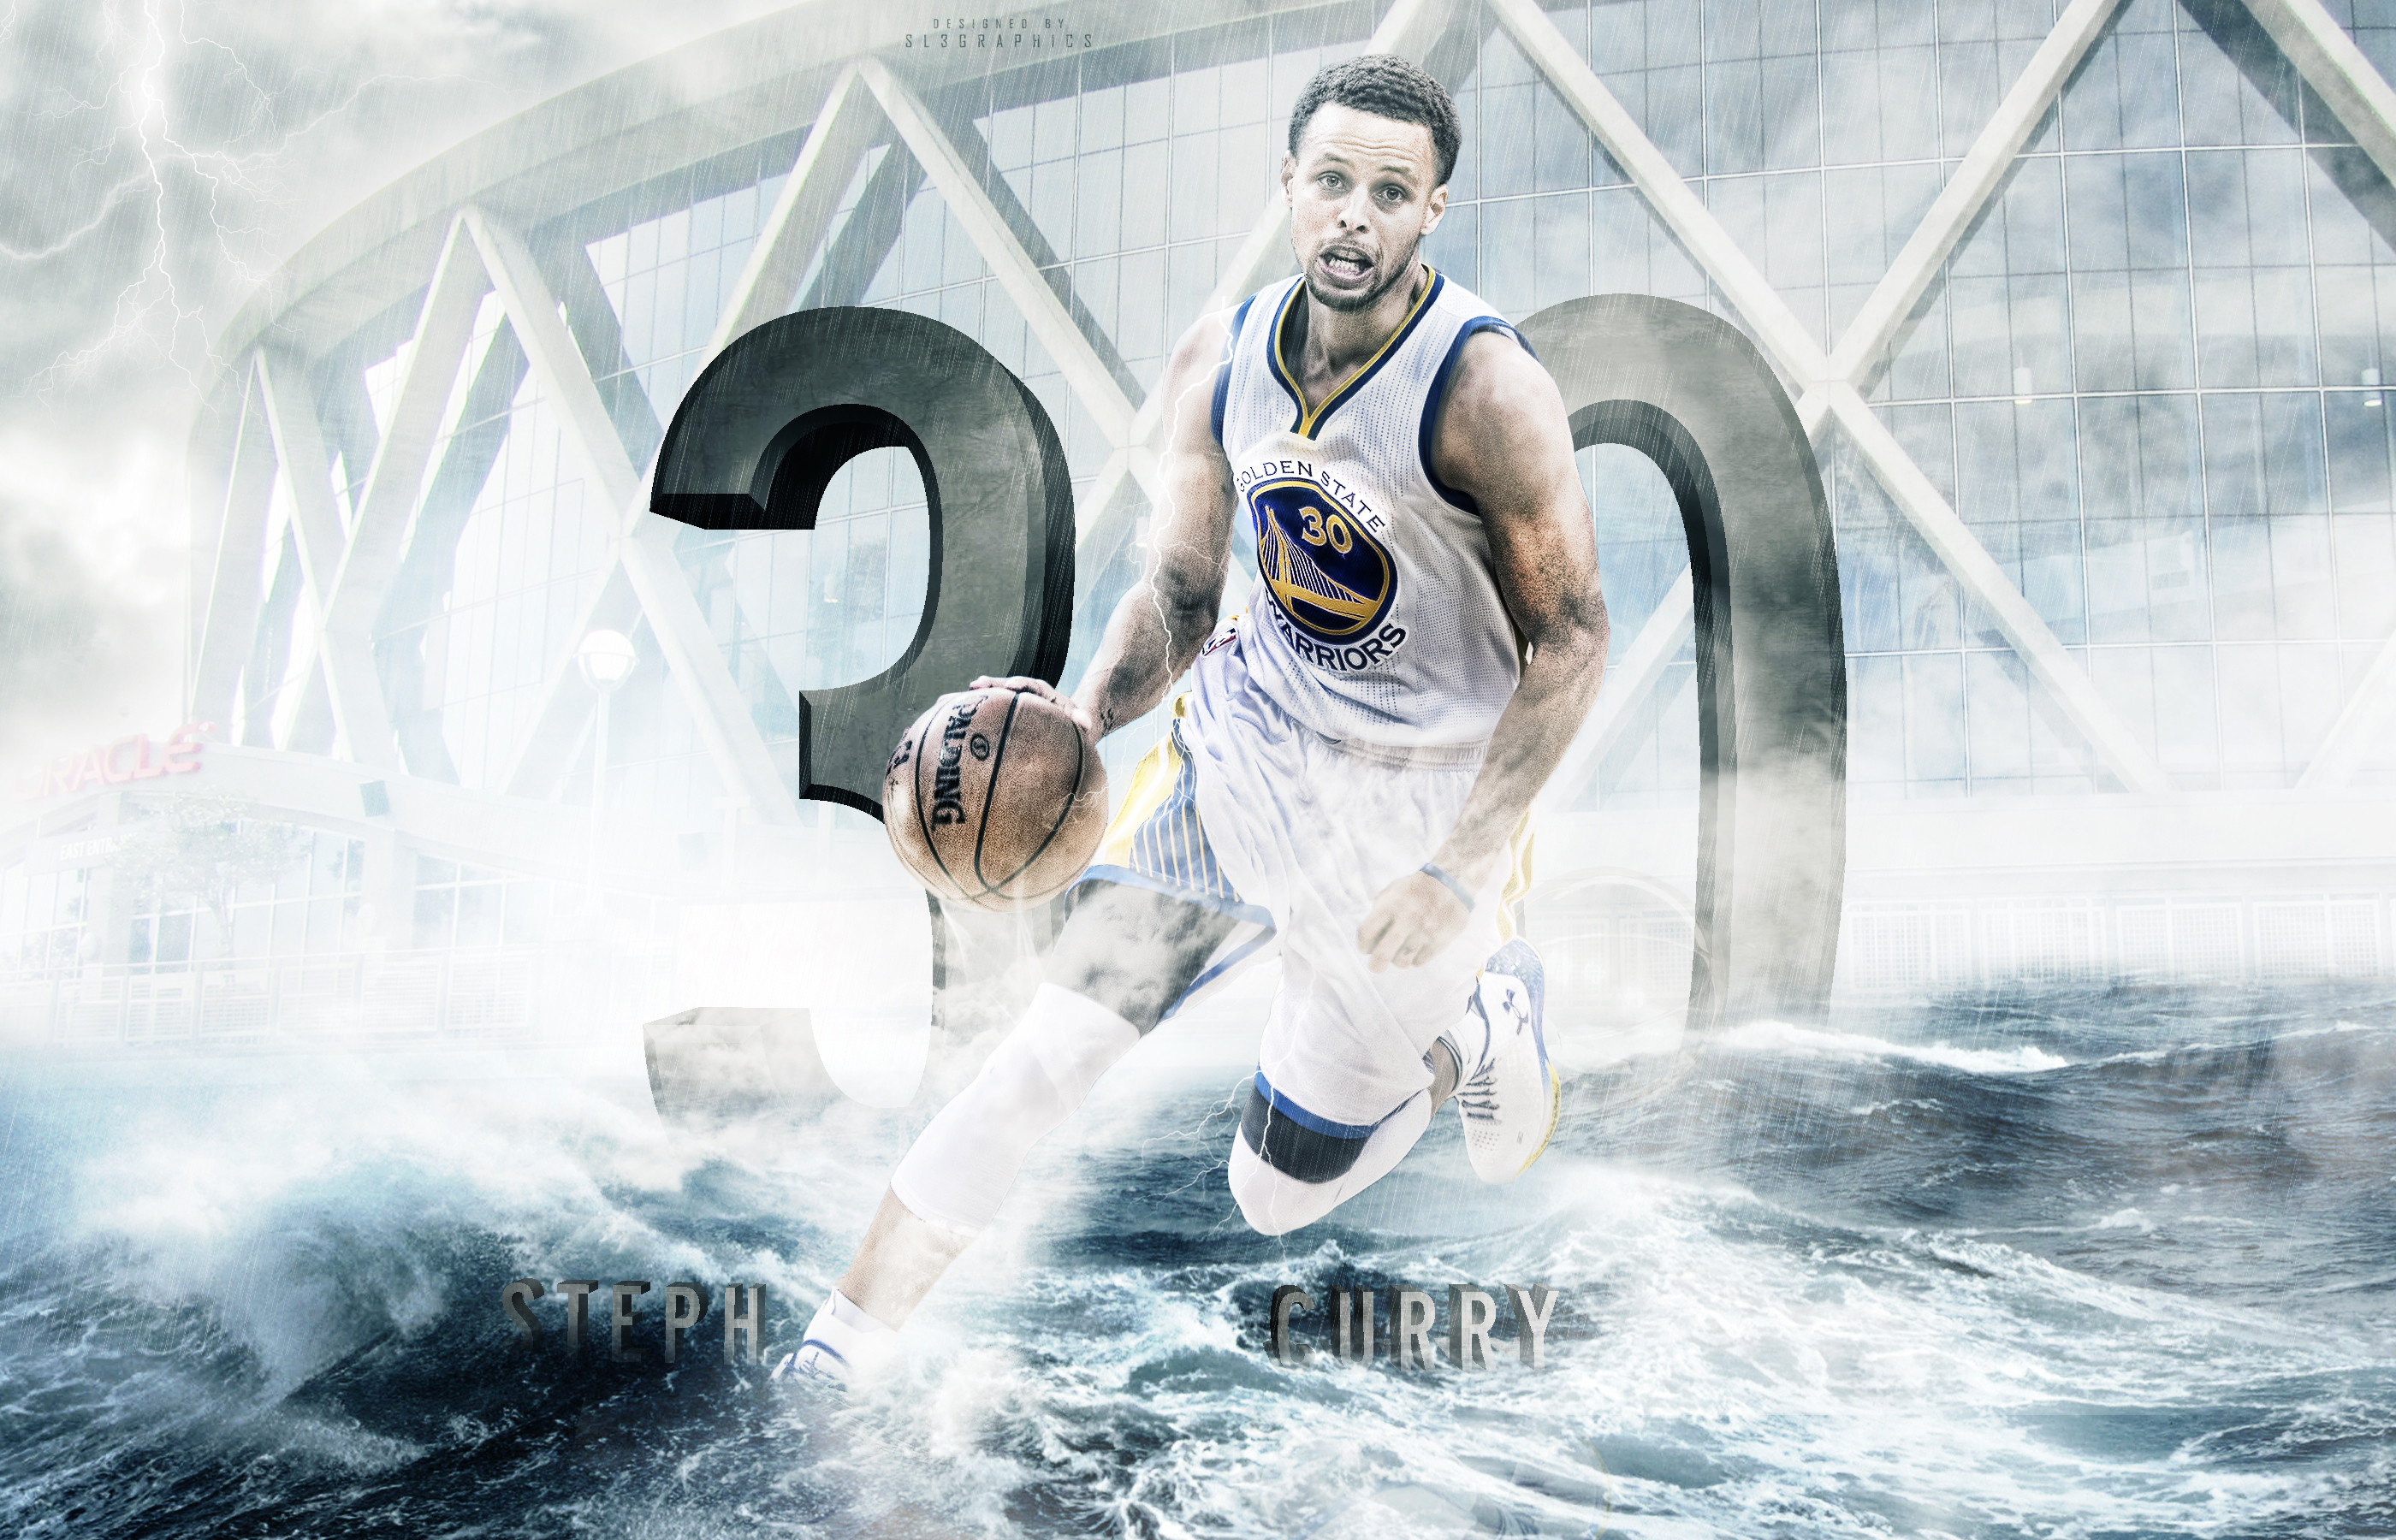 Stephen Curry Wallpaper HD 2017 (82+ Images